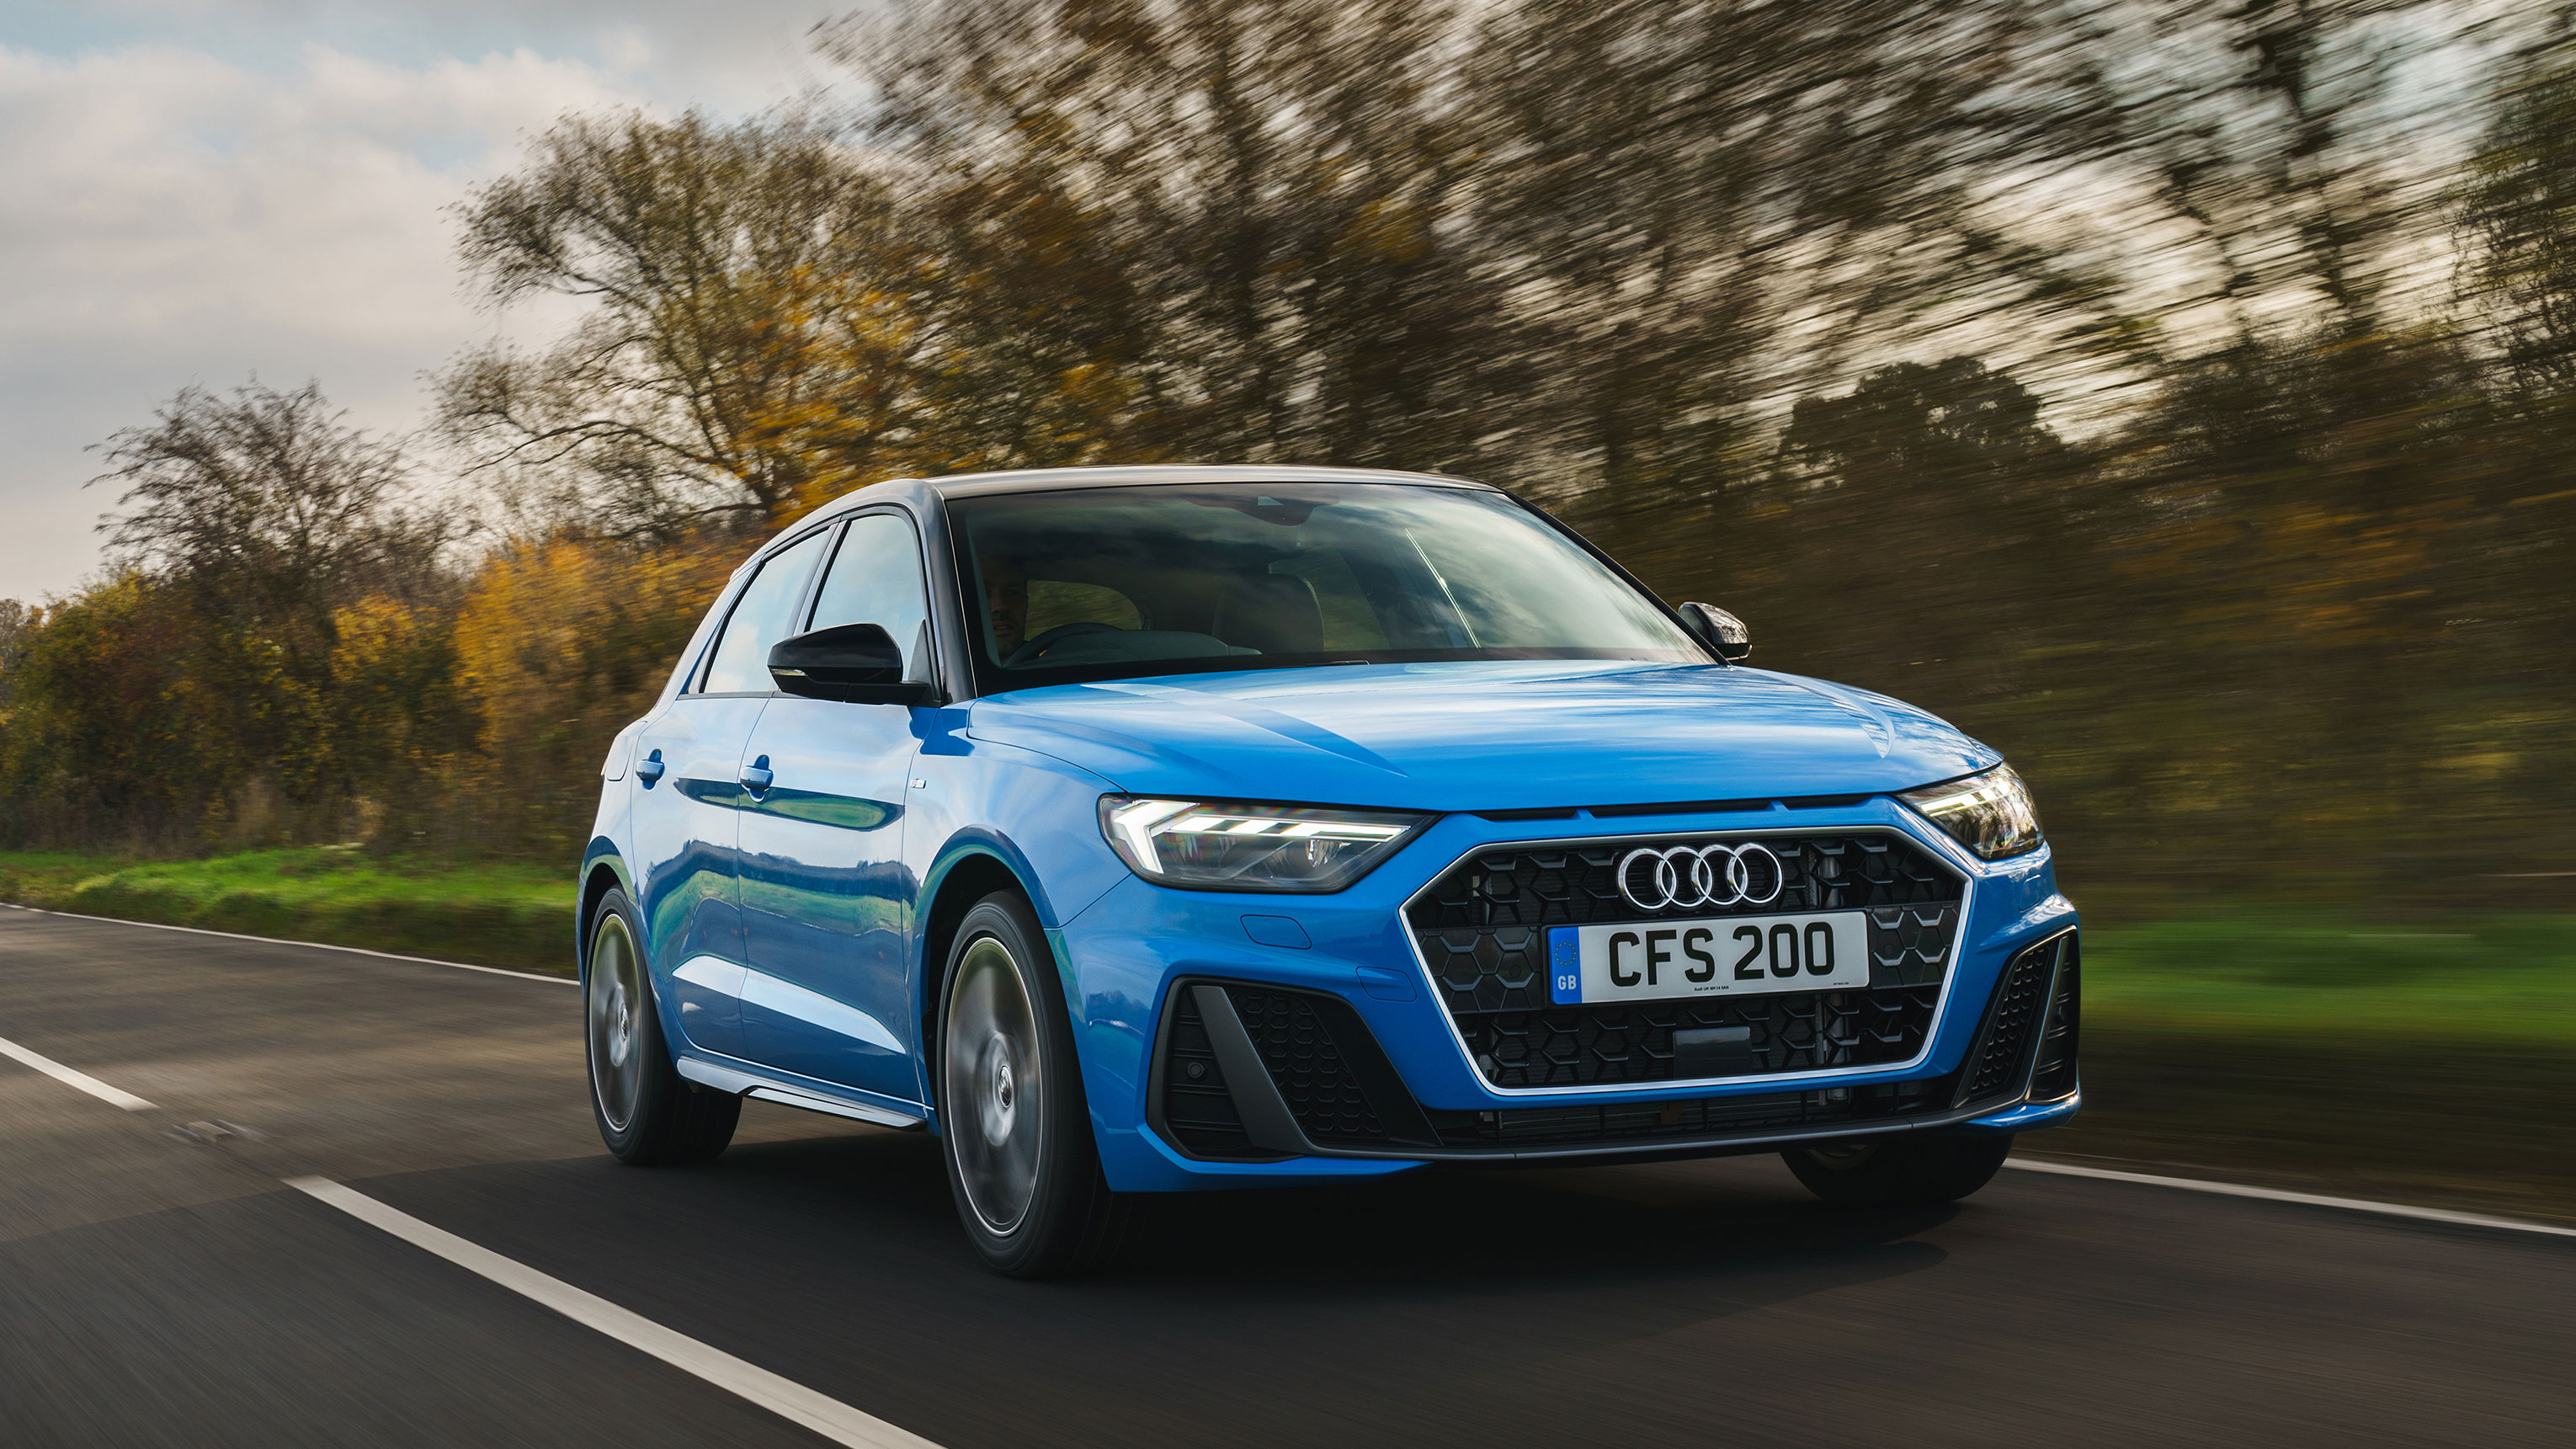 Grey Audi A1 Used Cars For Sale Autotrader Uk